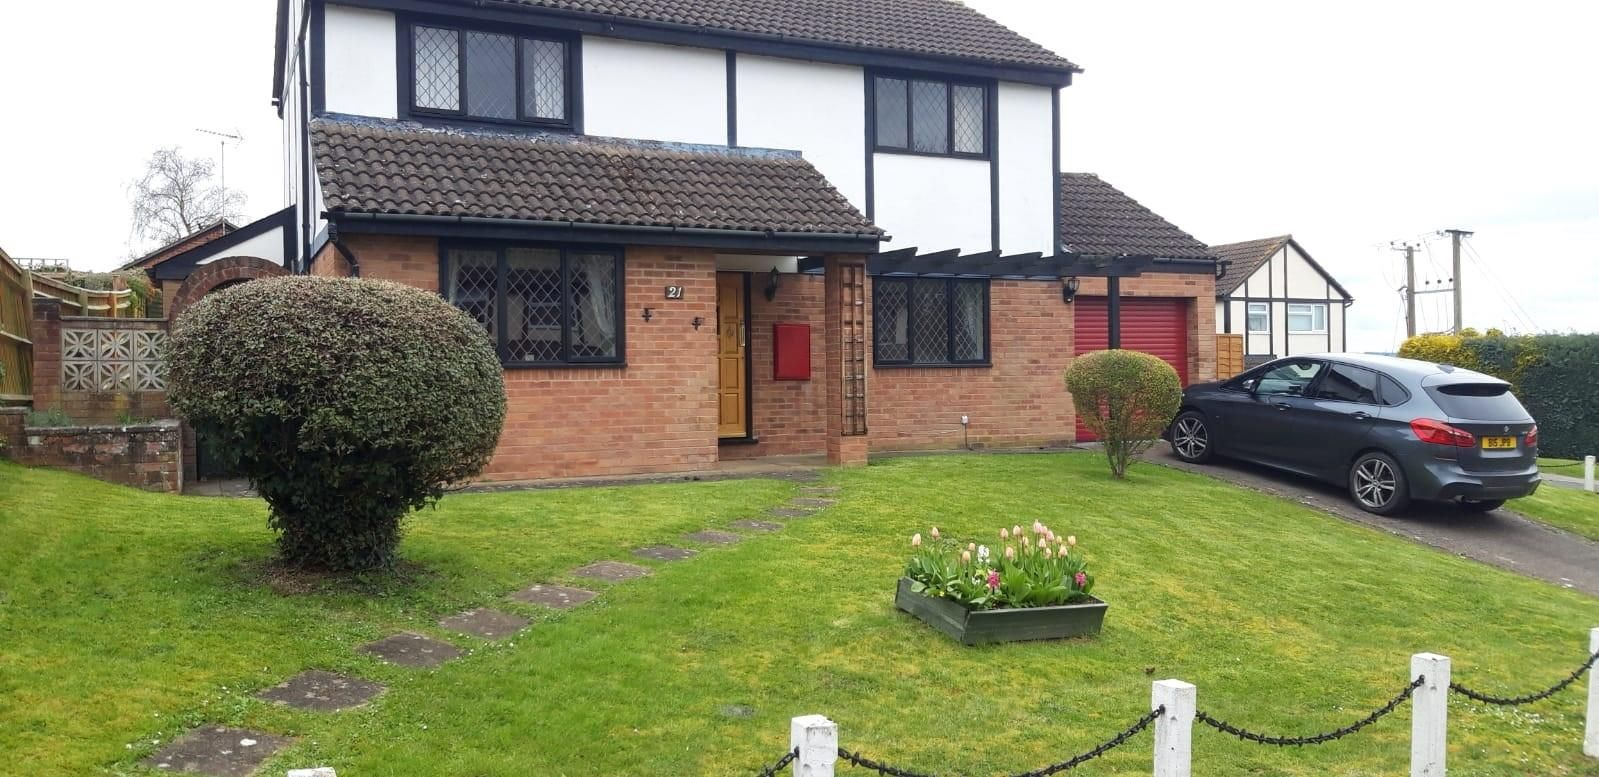 3 bed detached for sale in Leominster 14